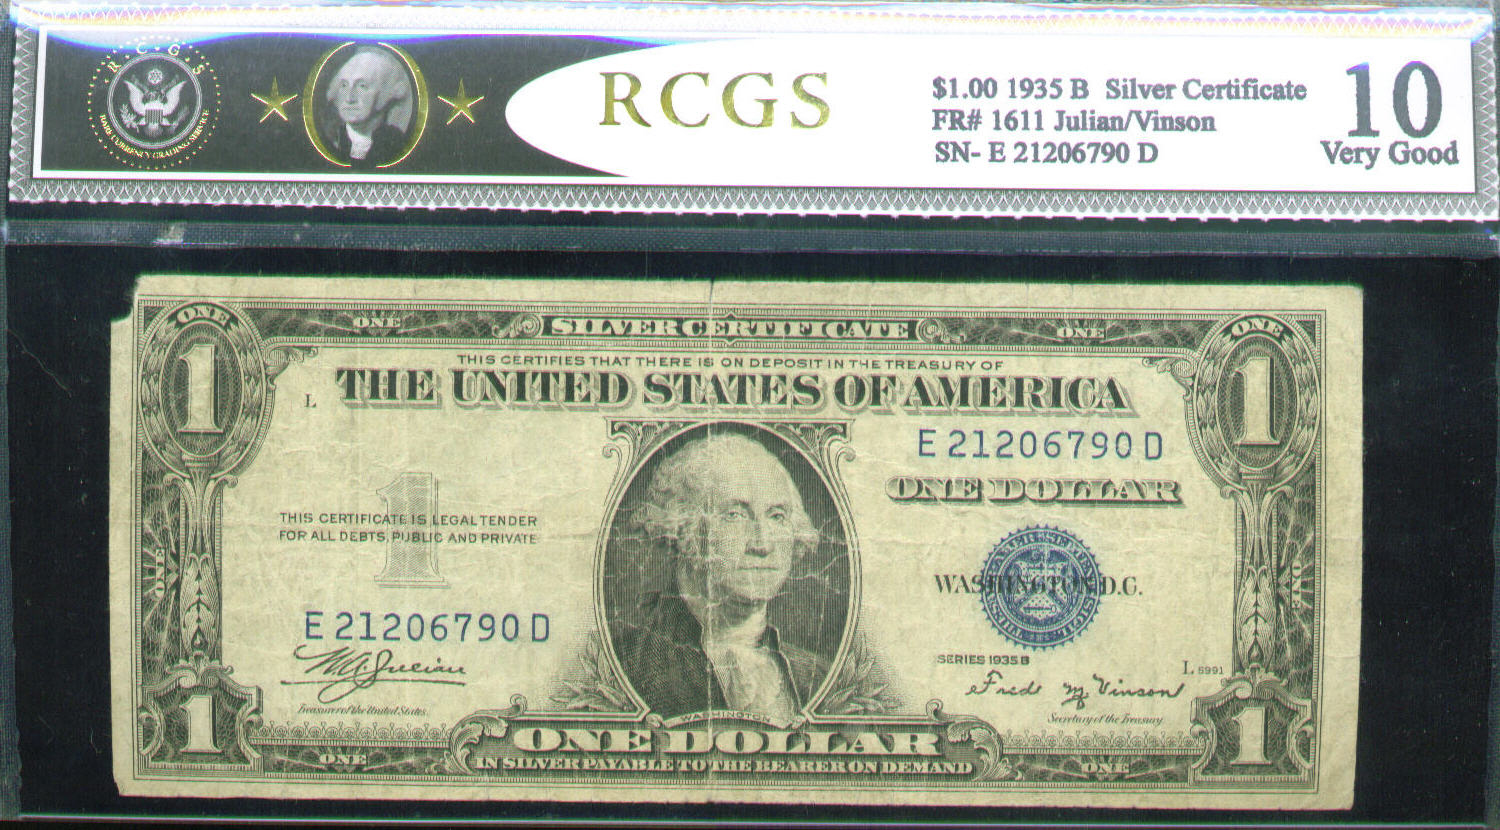 Acc certified currency notes 1935 very good 10 100 bill rcgs silver certificate xflitez Images